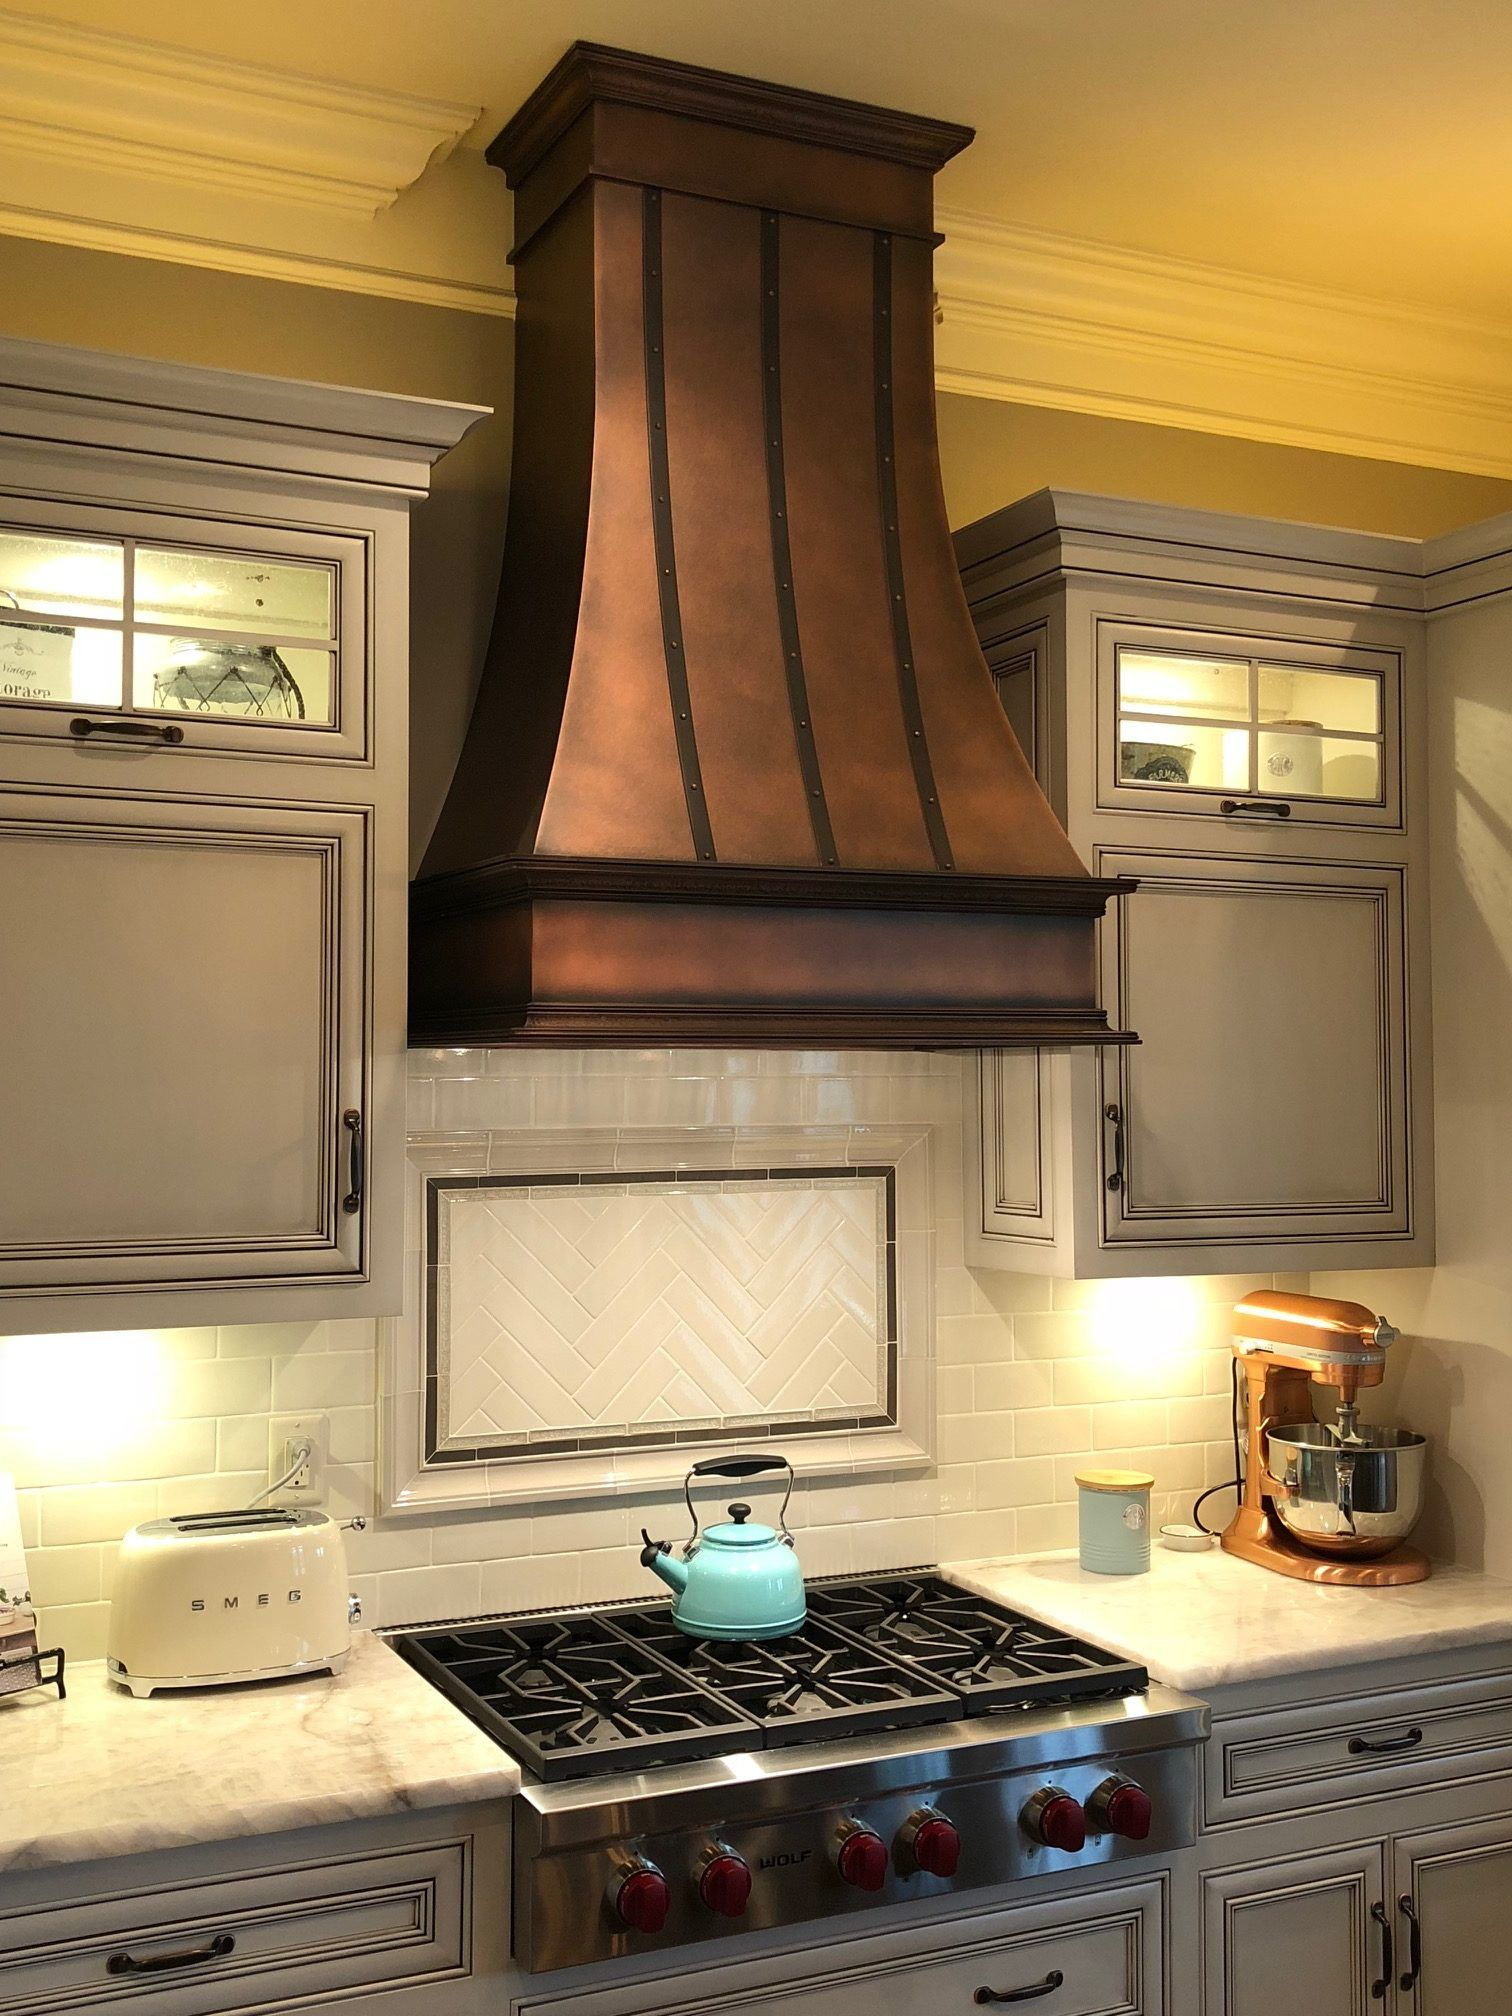 kitchen vent kitchen vent kitchen vent hood copper kitchen hood on kitchen remodel vent hood id=57623